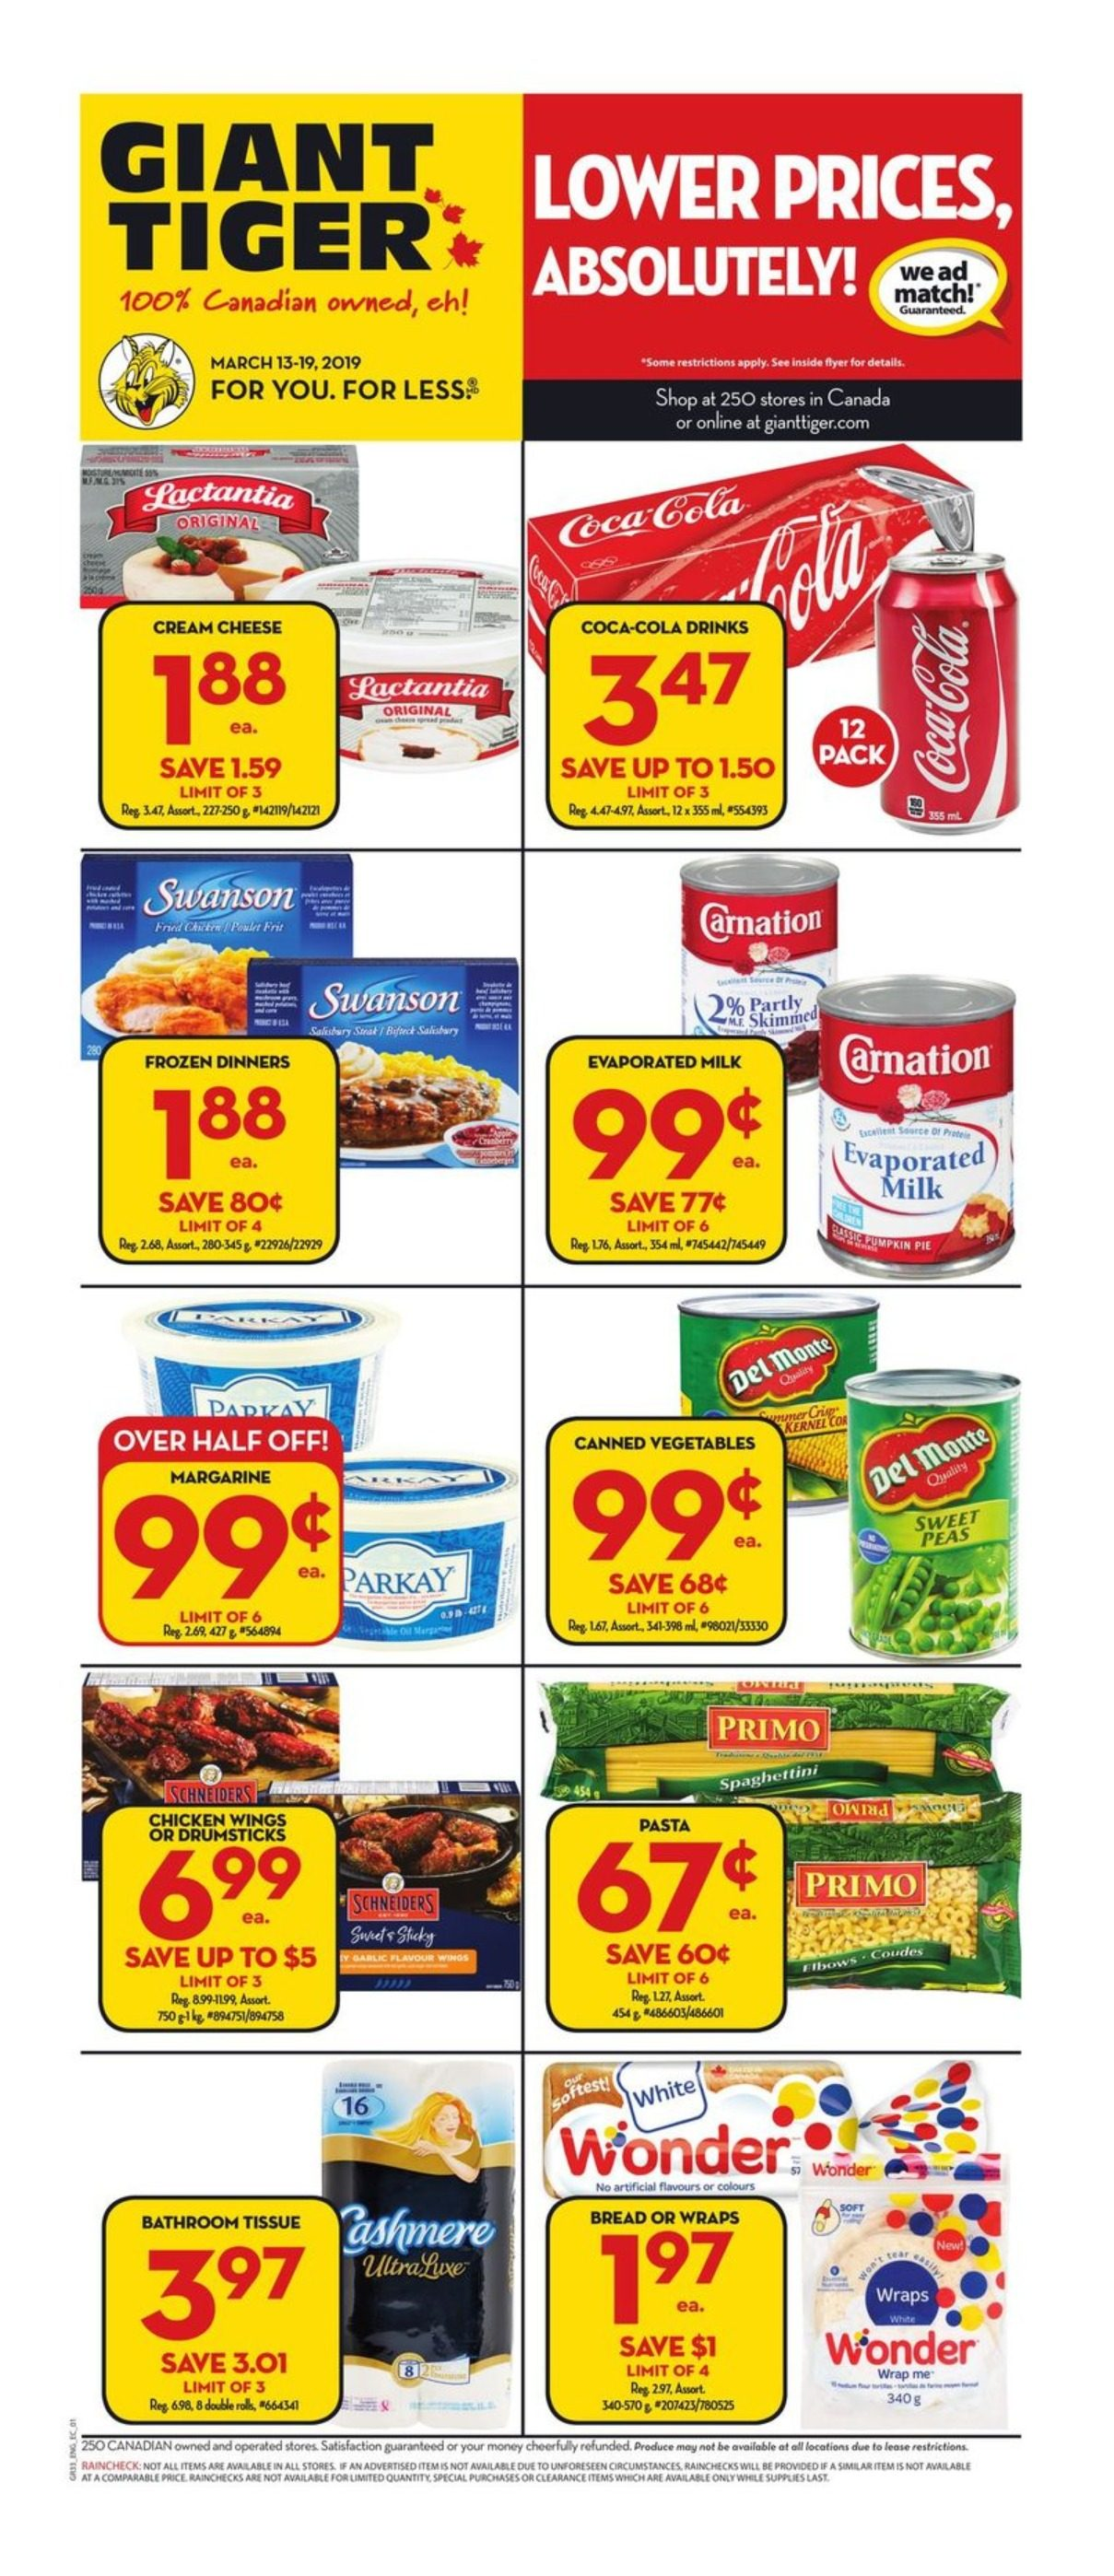 Real Canadian Superstore Ontario Flyer March 14 to 20 2019 003 1 e1552476773114